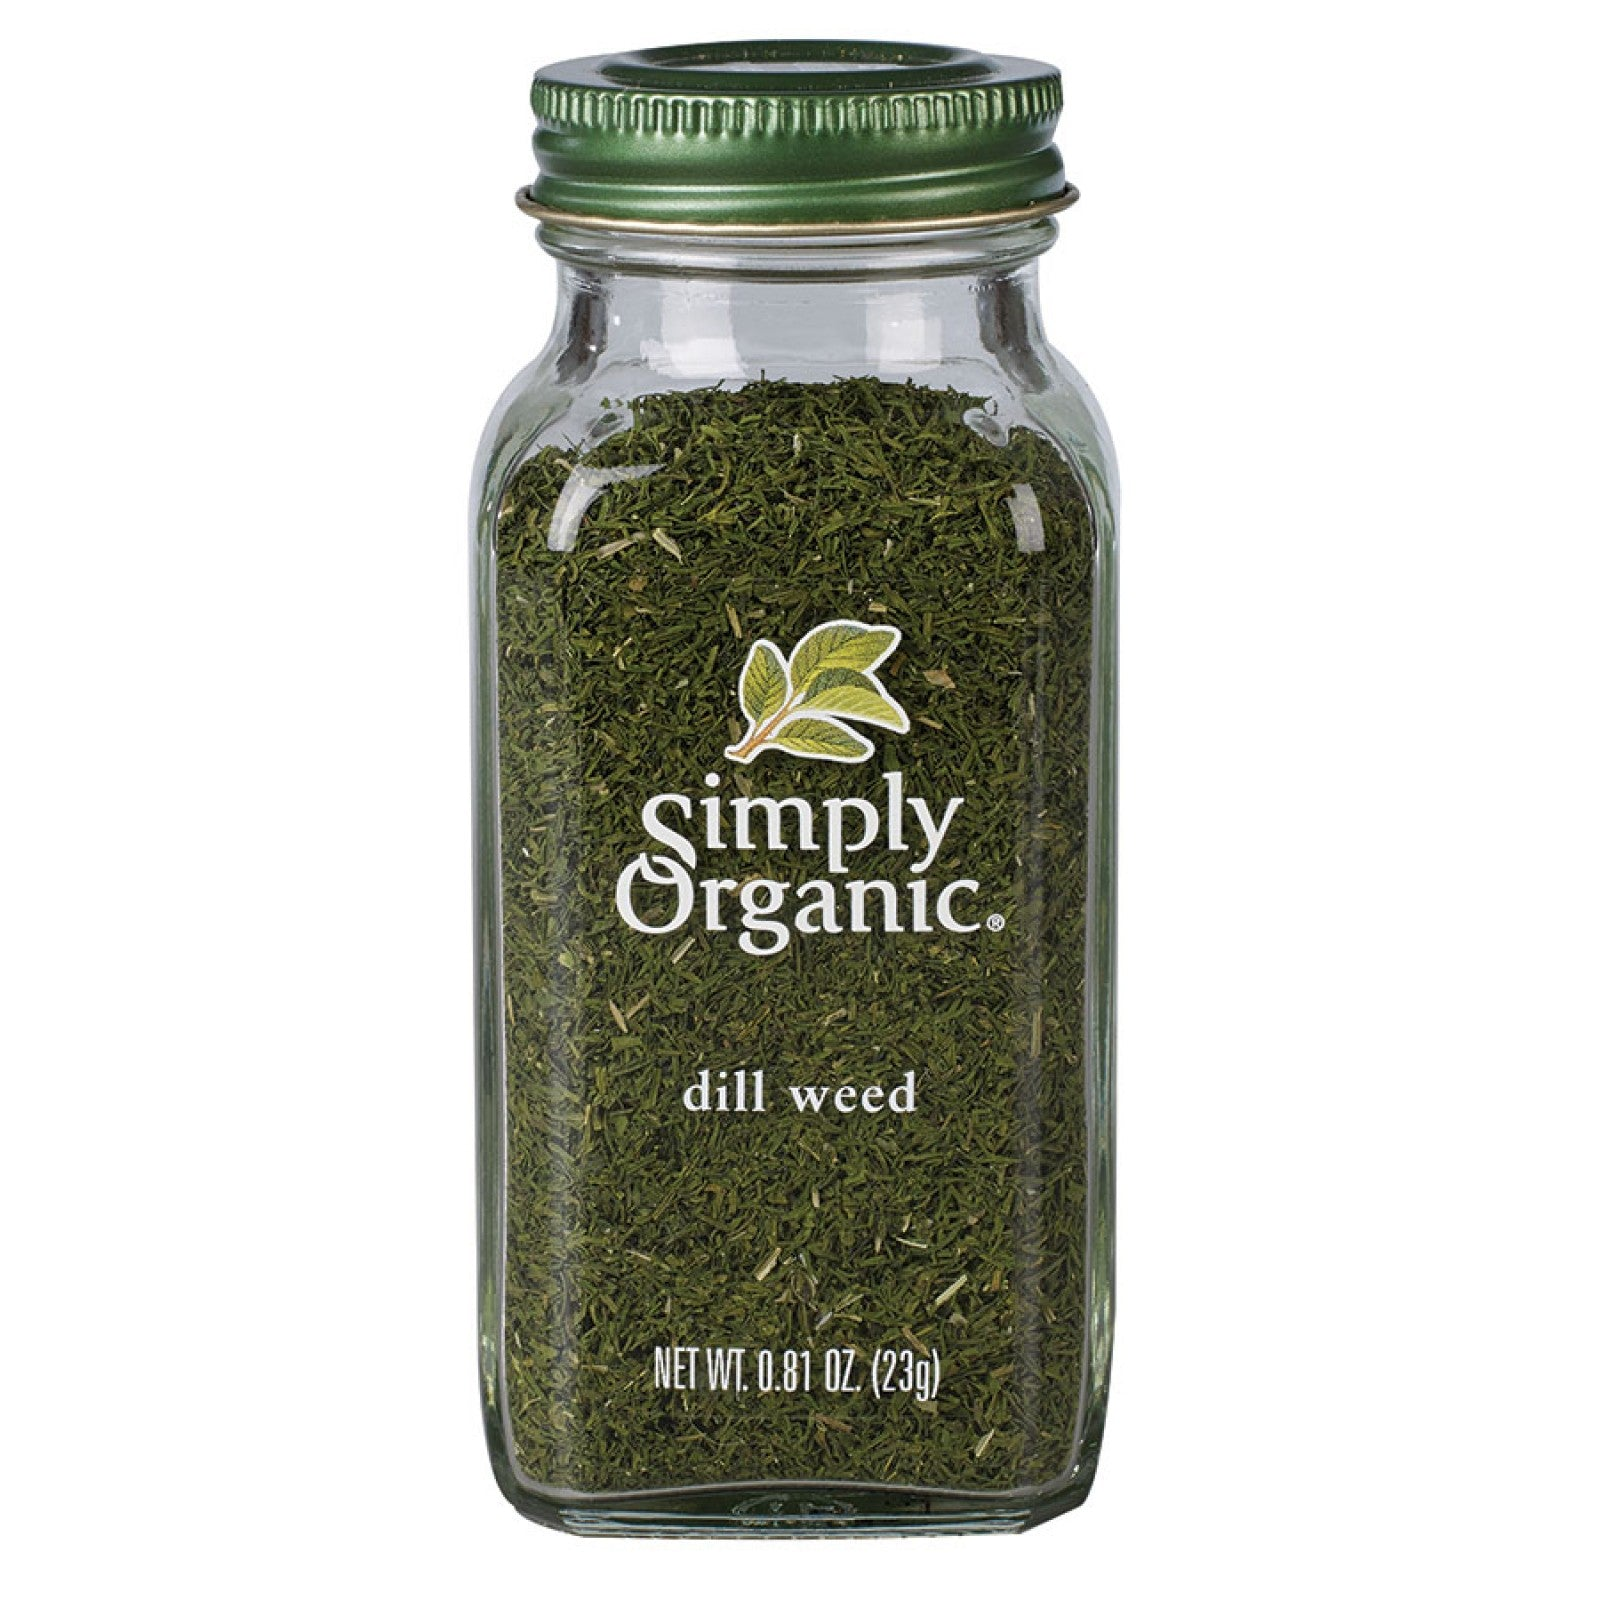 Simply Organic Dill Weed